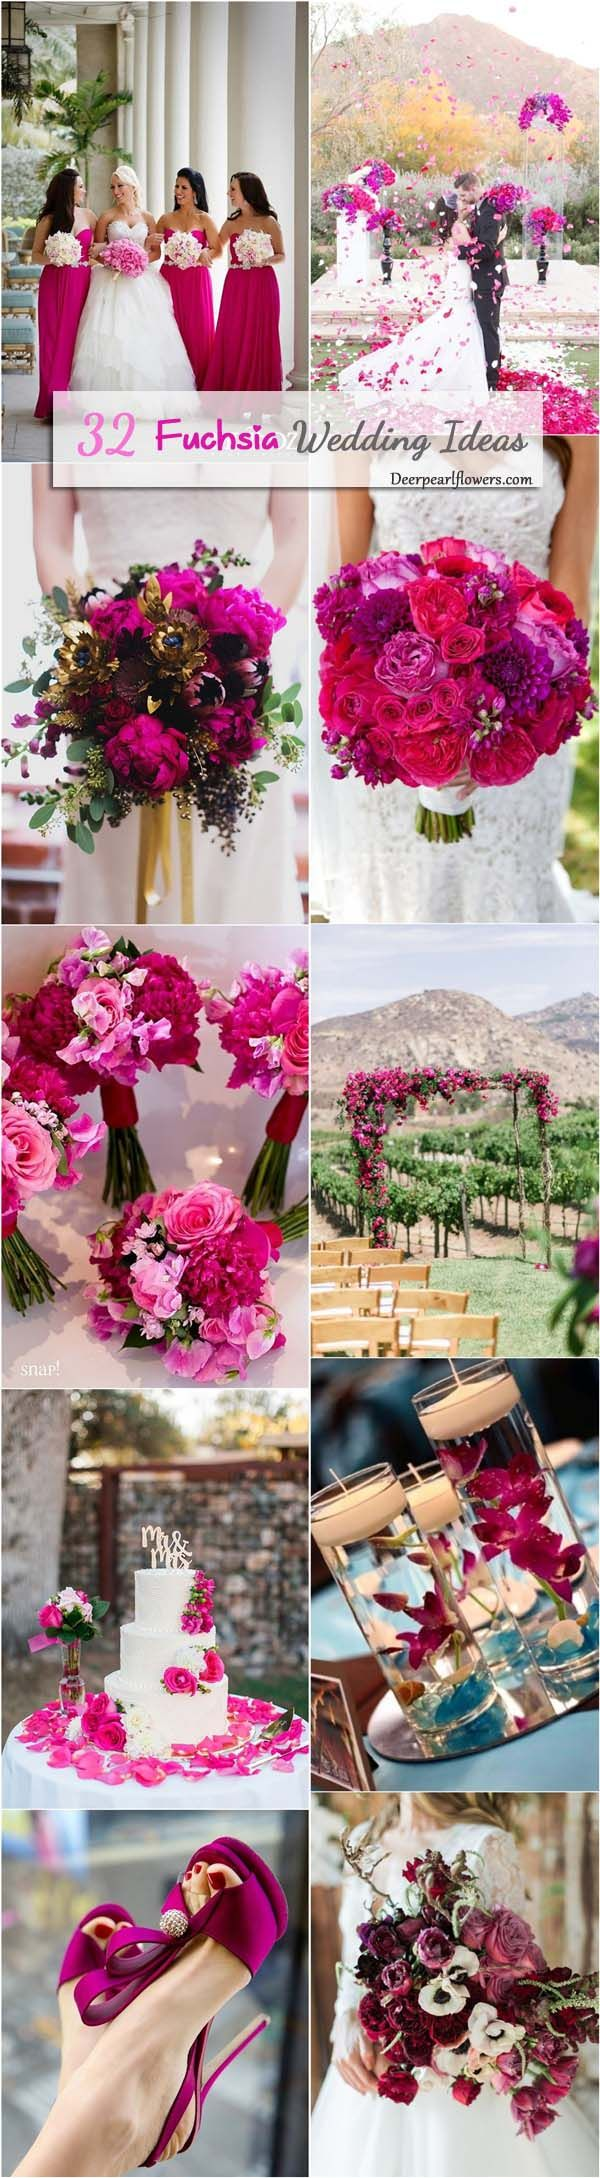 487 best wedding images on pinterest weddings amazing cakes and 30 fuchsia hot pink wedding color ideas junglespirit Image collections